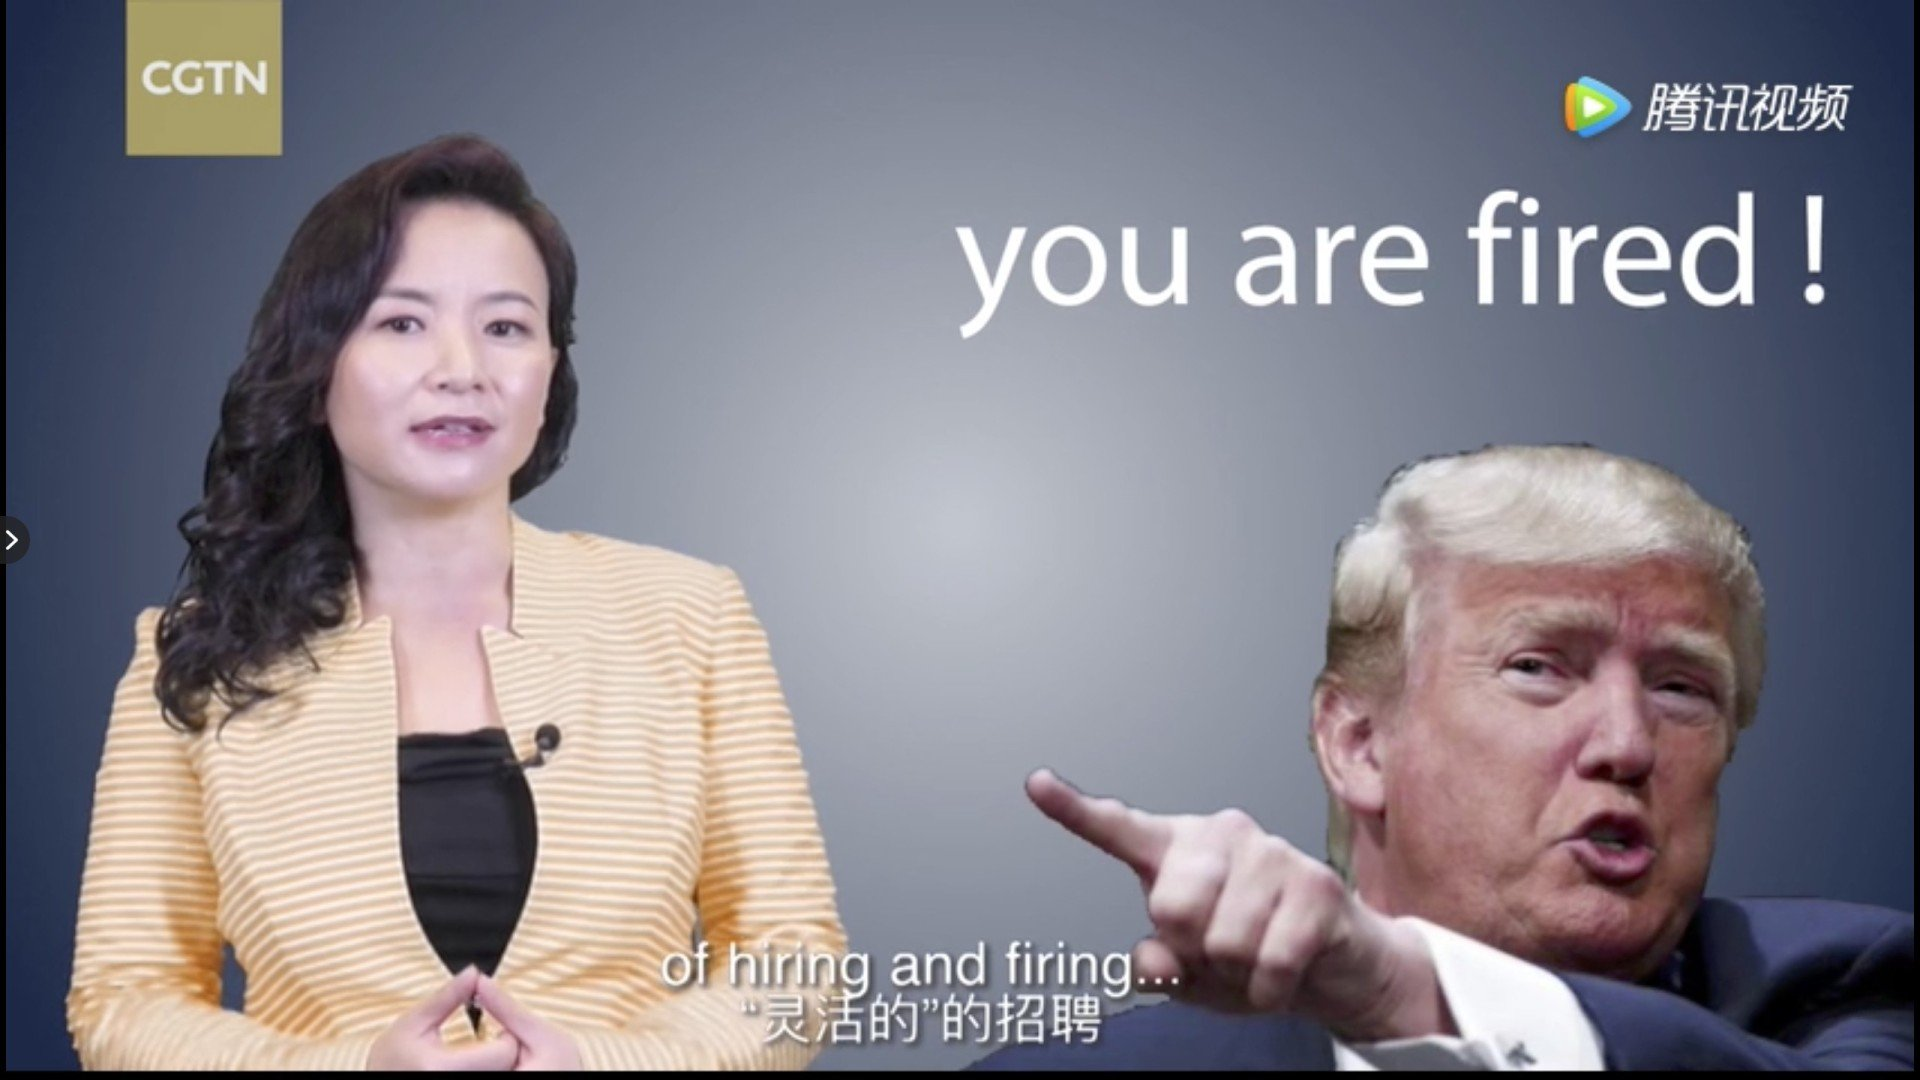 Video mocking Donald Trump pulled by Chinese state media     just